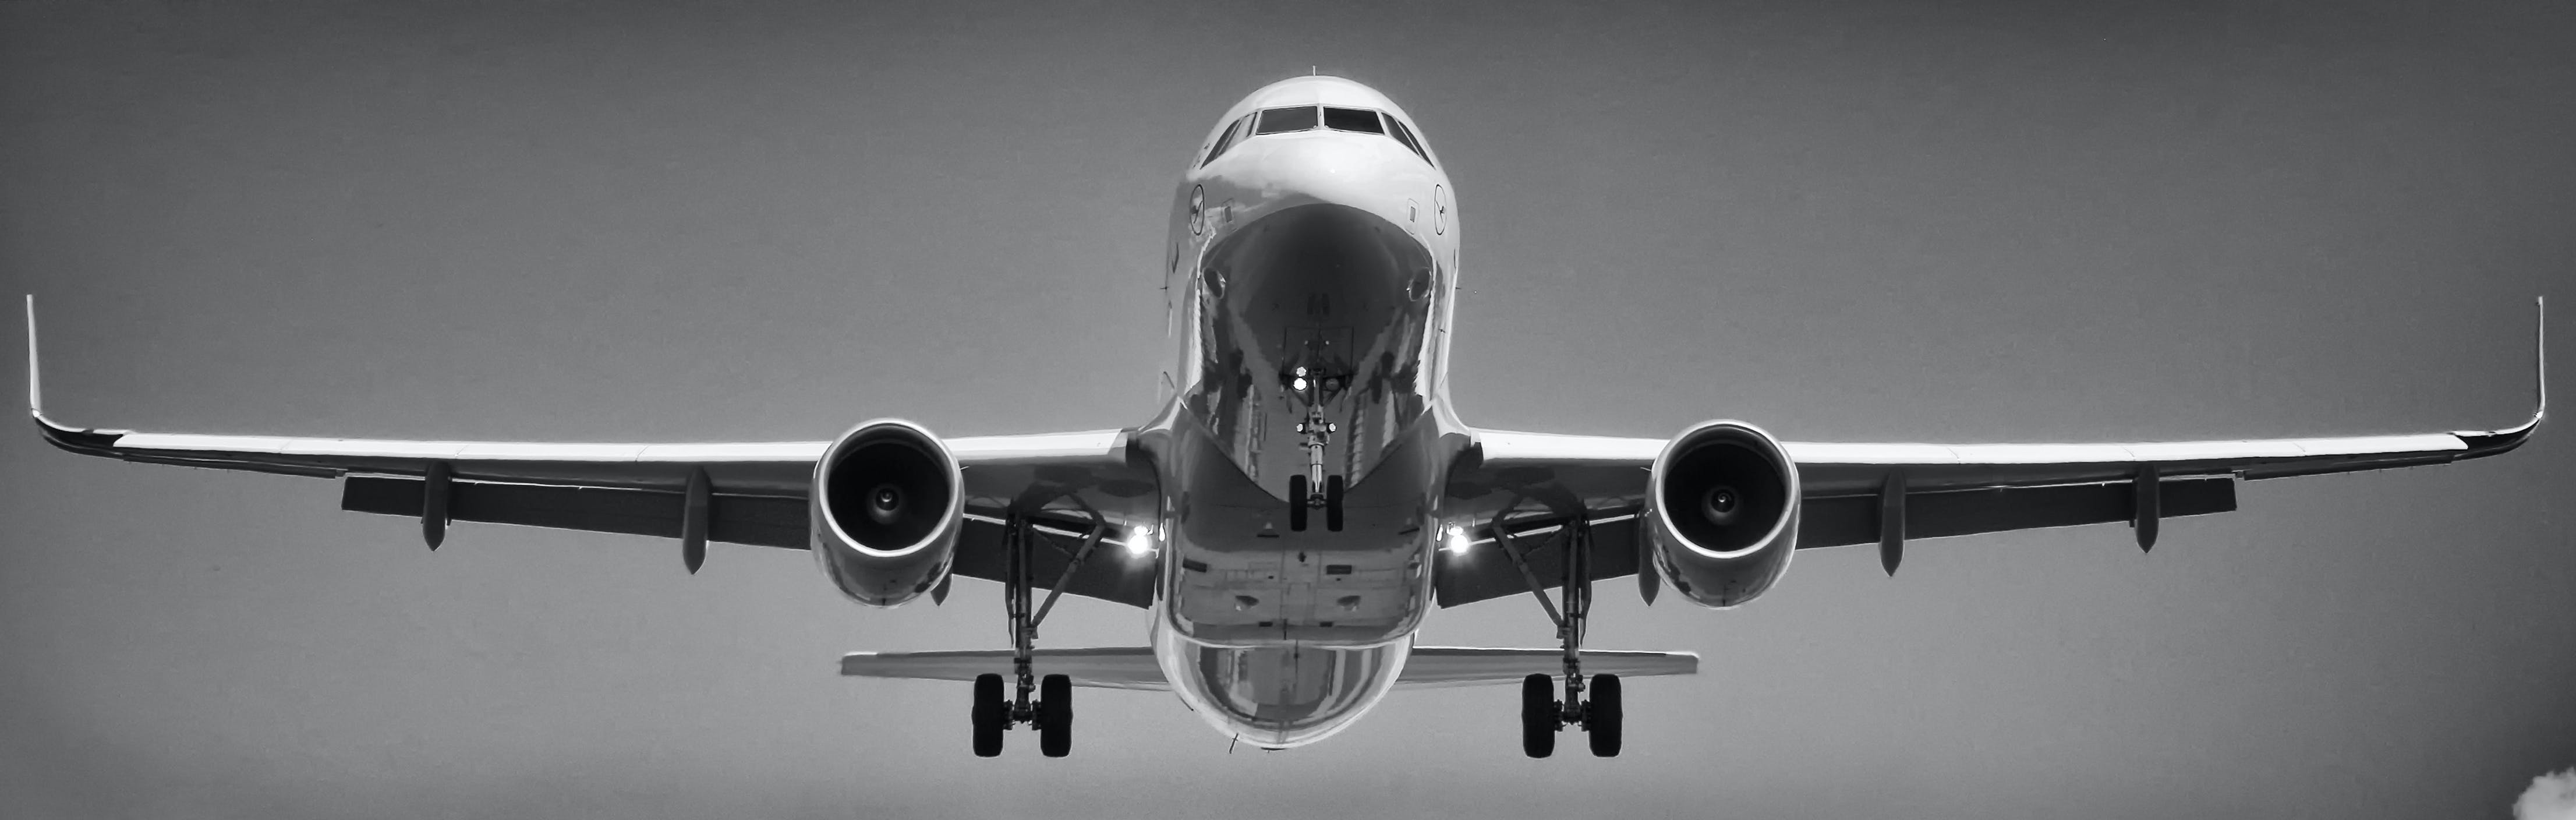 Free stock photo of airplane, airport, black-and-white